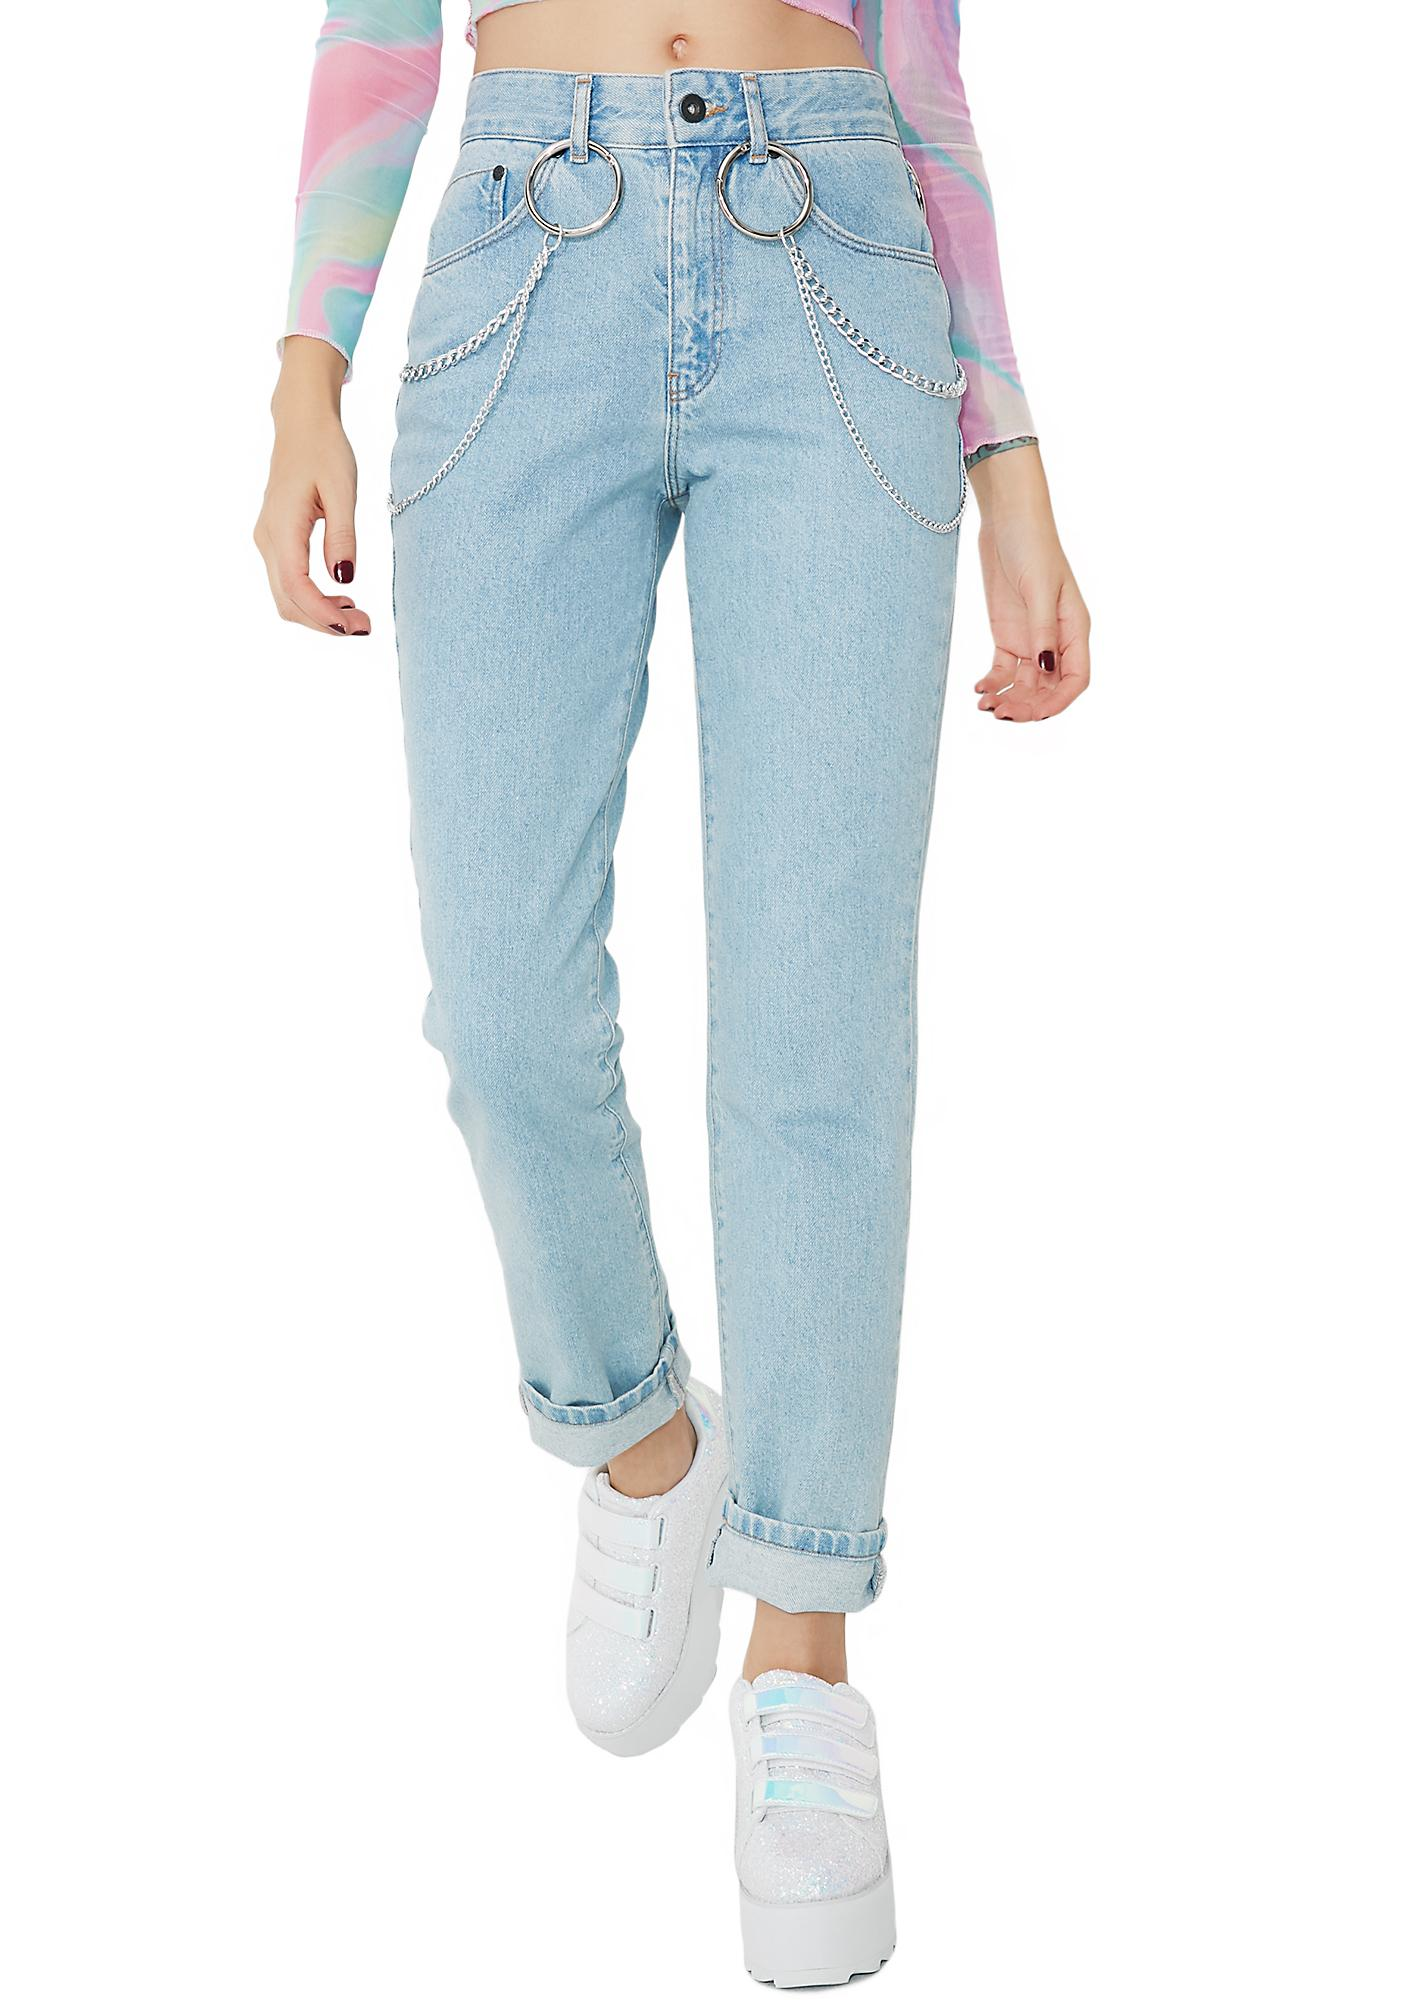 The Ragged Priest Bolt Jeans